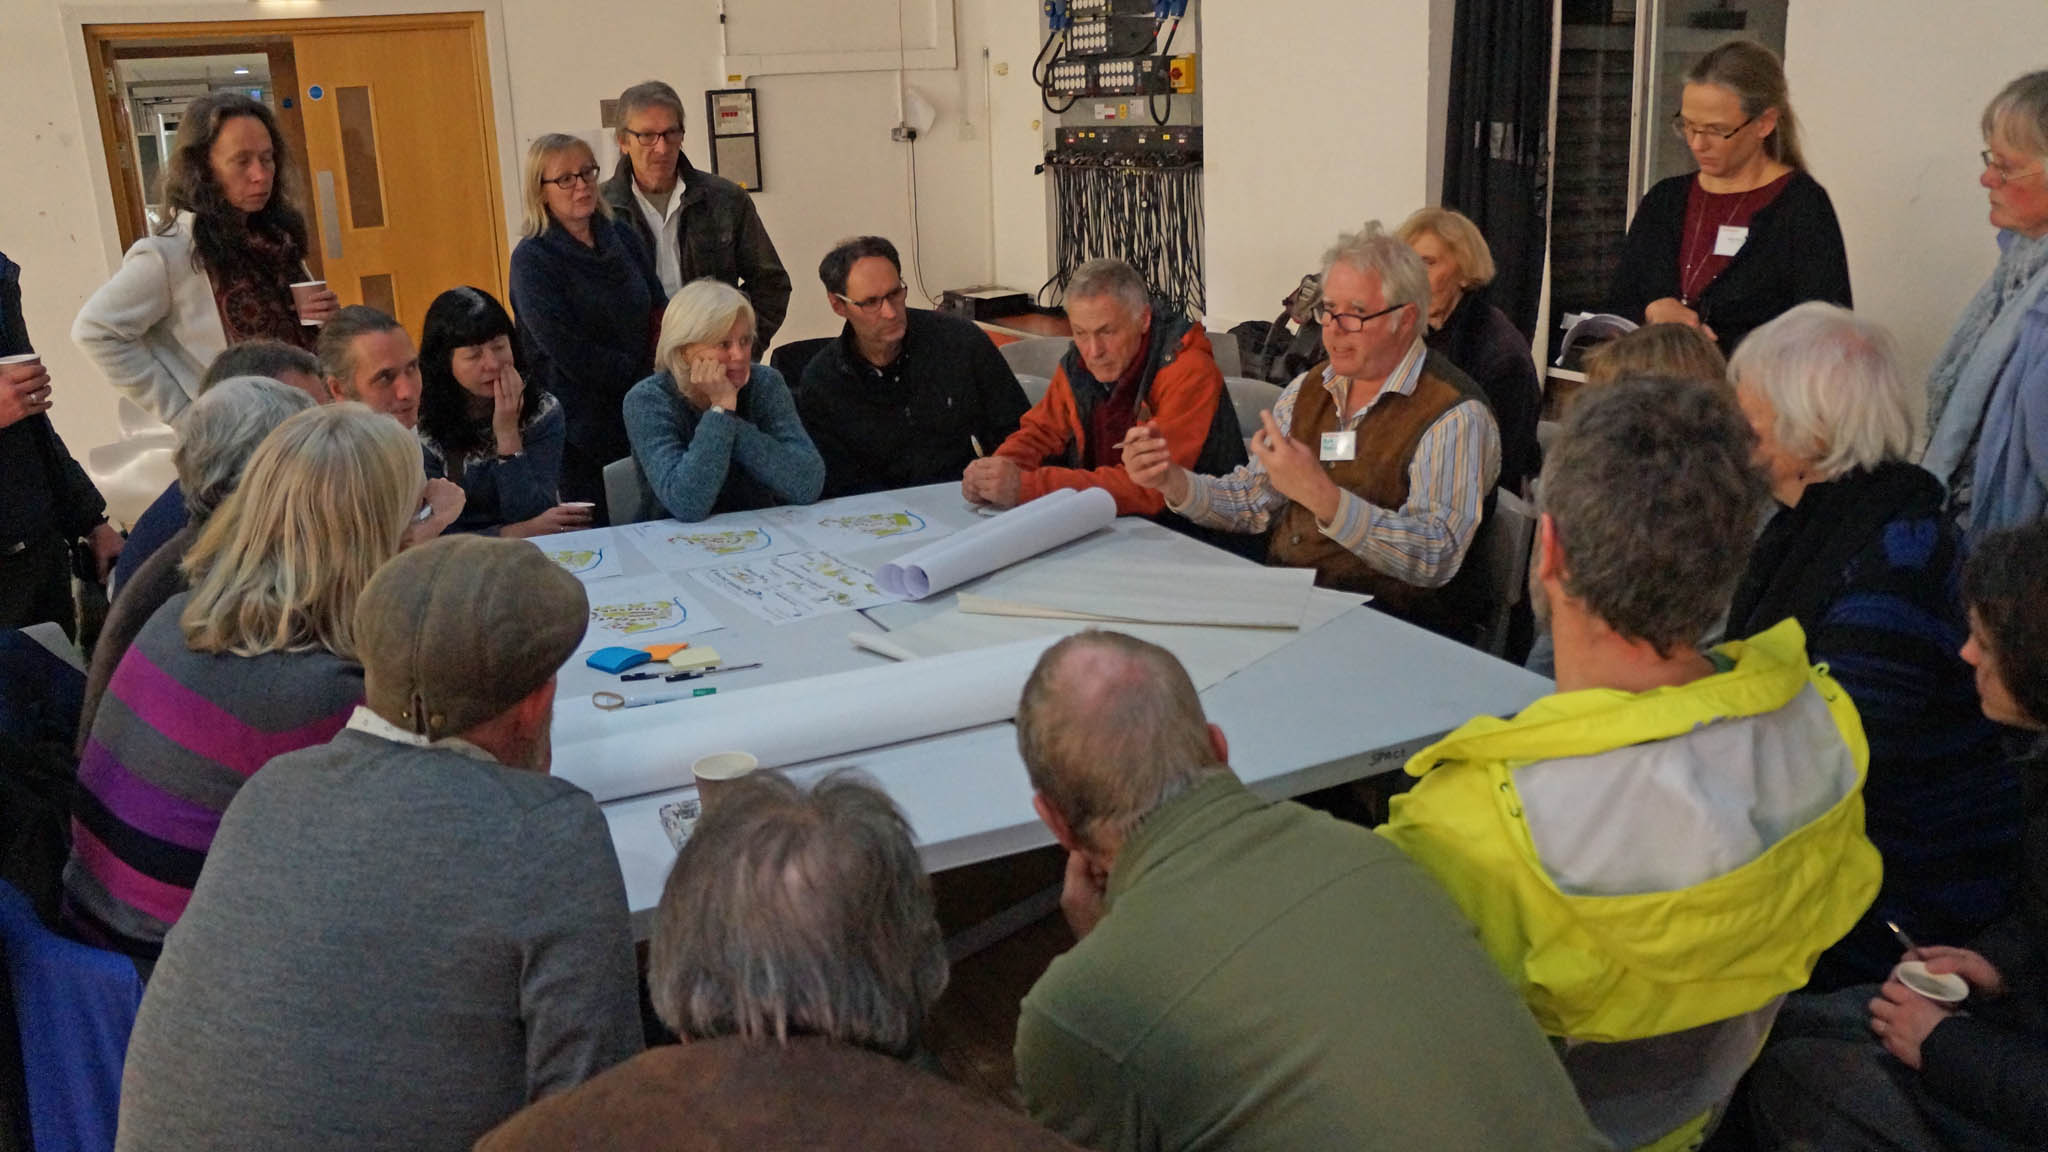 Bob Tomlinson and potential self builders discuss the issues at a community consultation workshop in November 2016